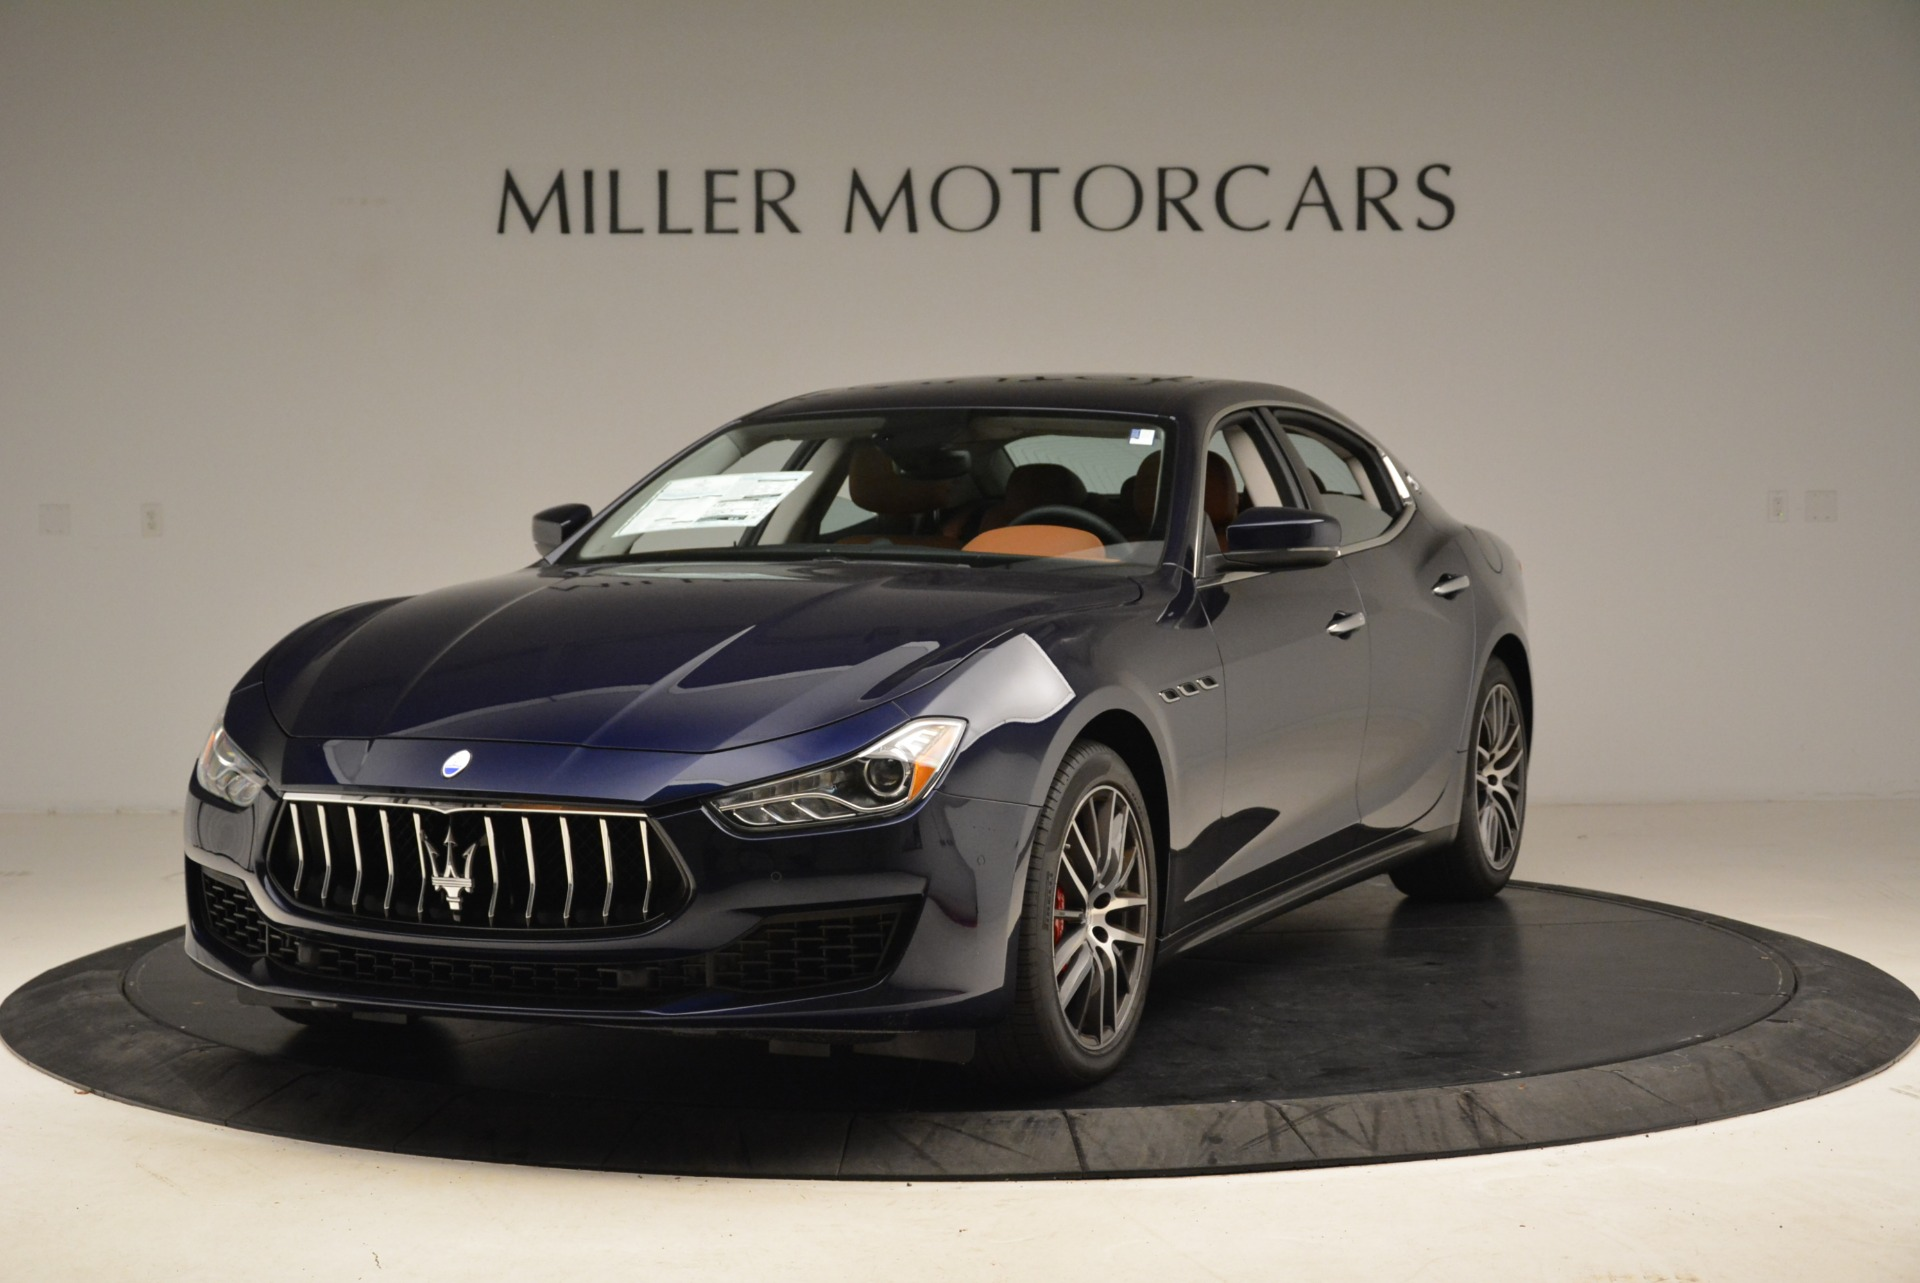 Used 2018 Maserati Ghibli S Q4 for sale $49,900 at Bentley Greenwich in Greenwich CT 06830 1